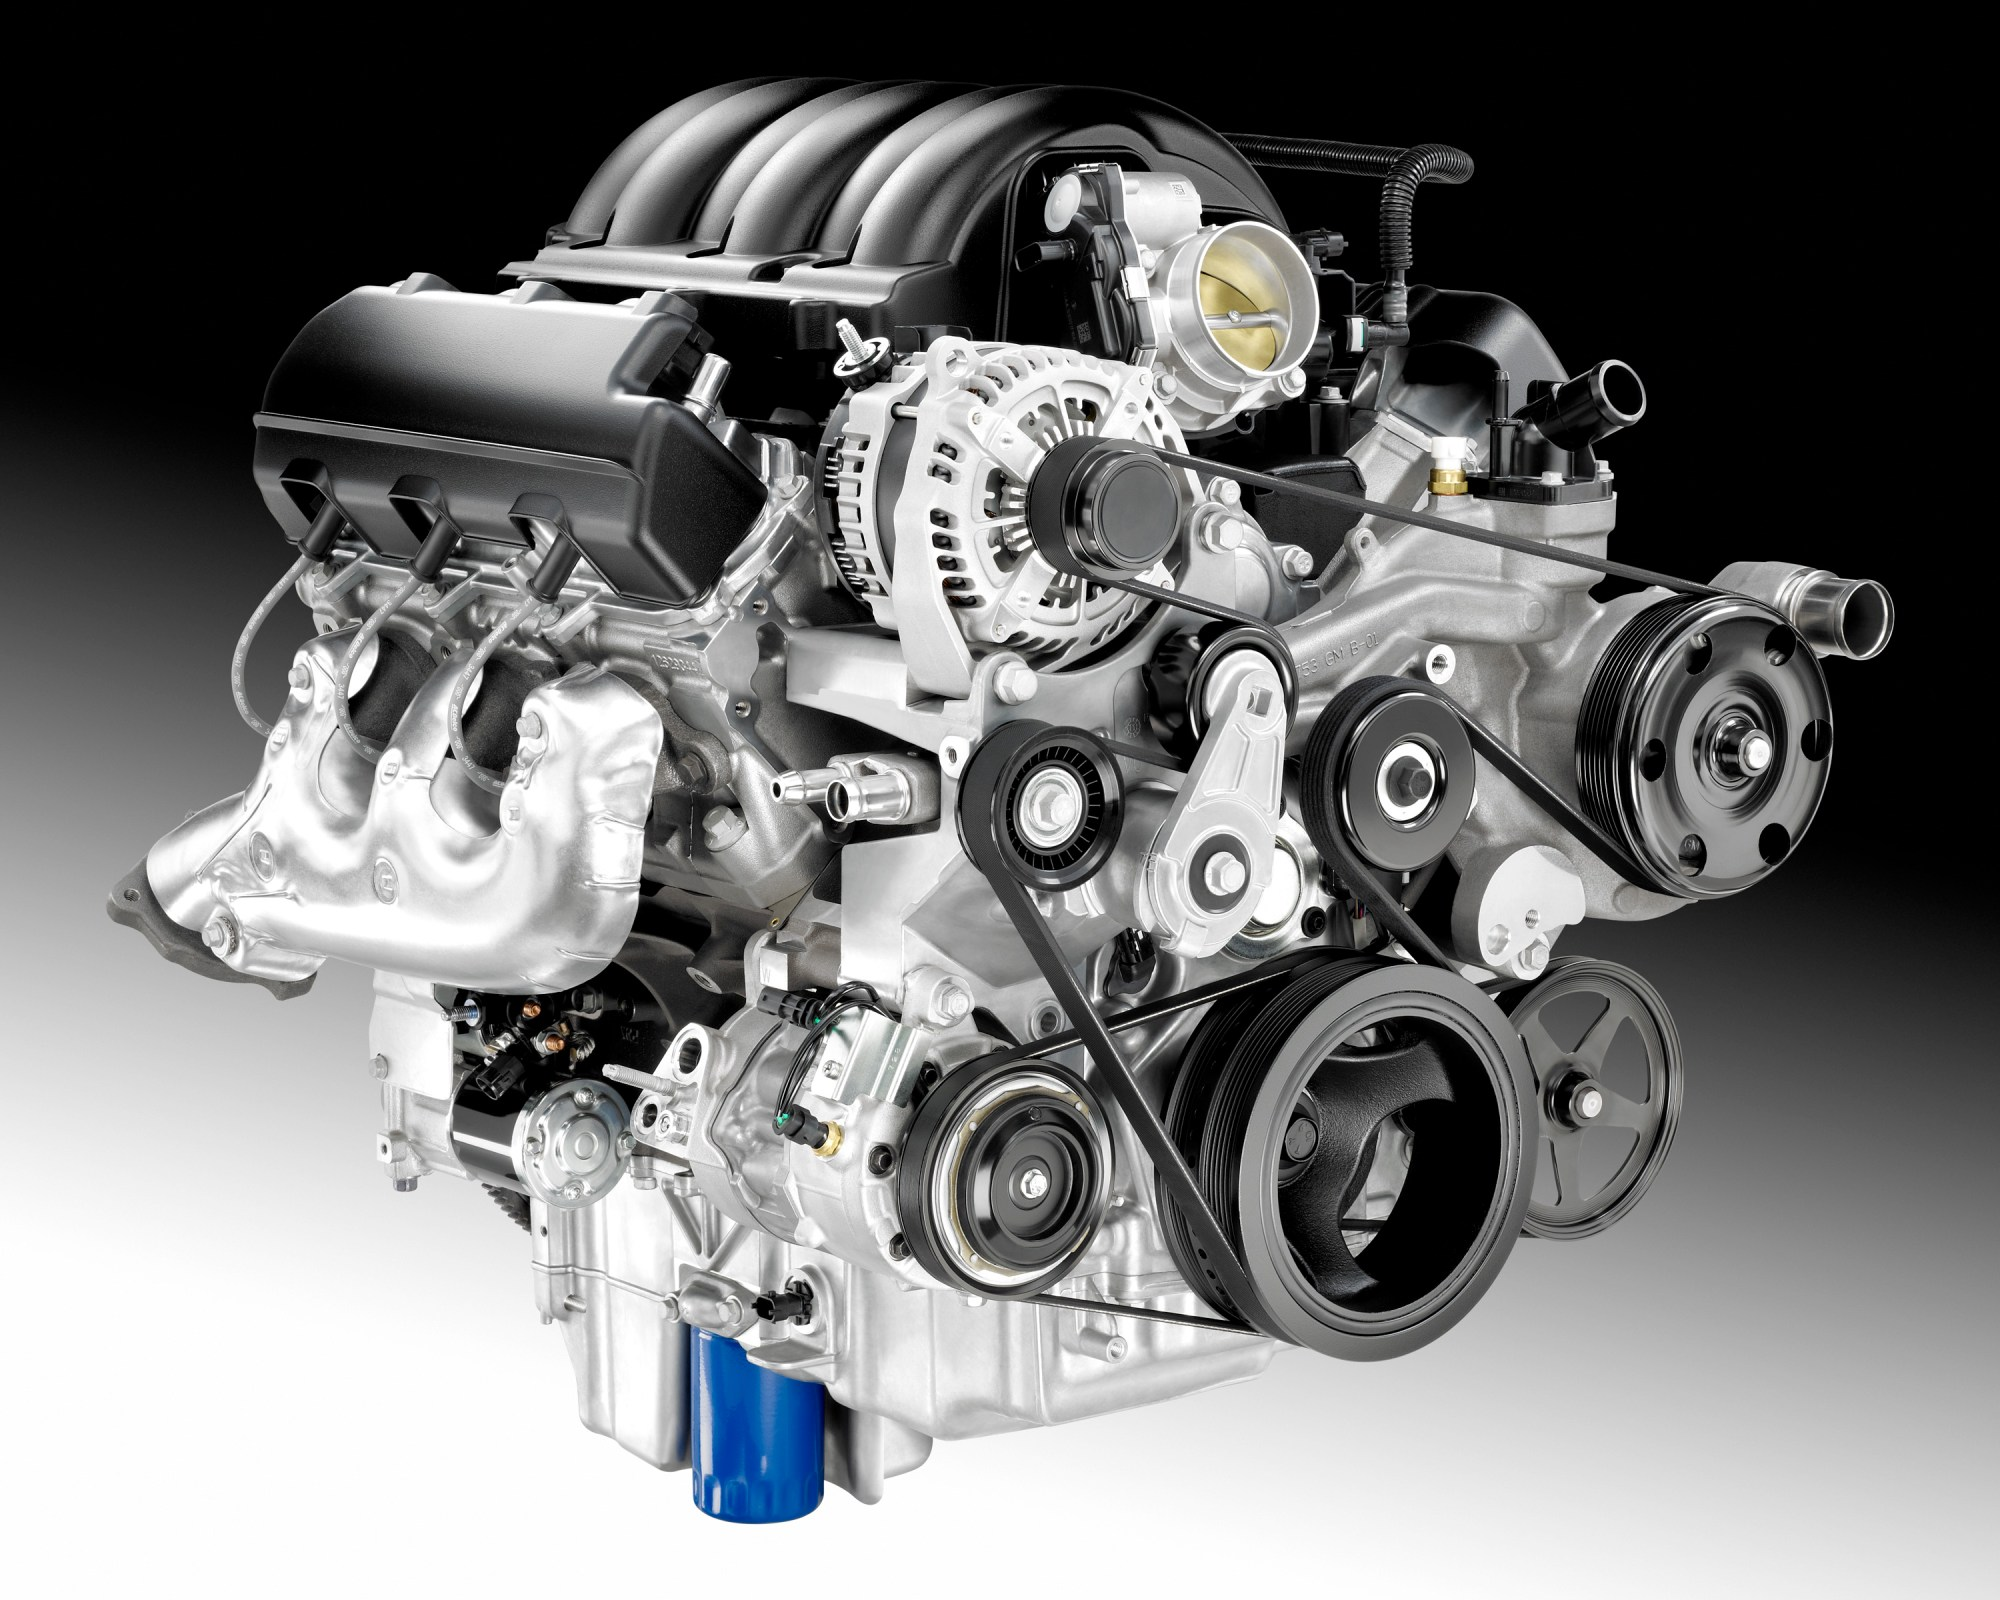 hight resolution of chrysler 2005 3 8 v6 engine diagram